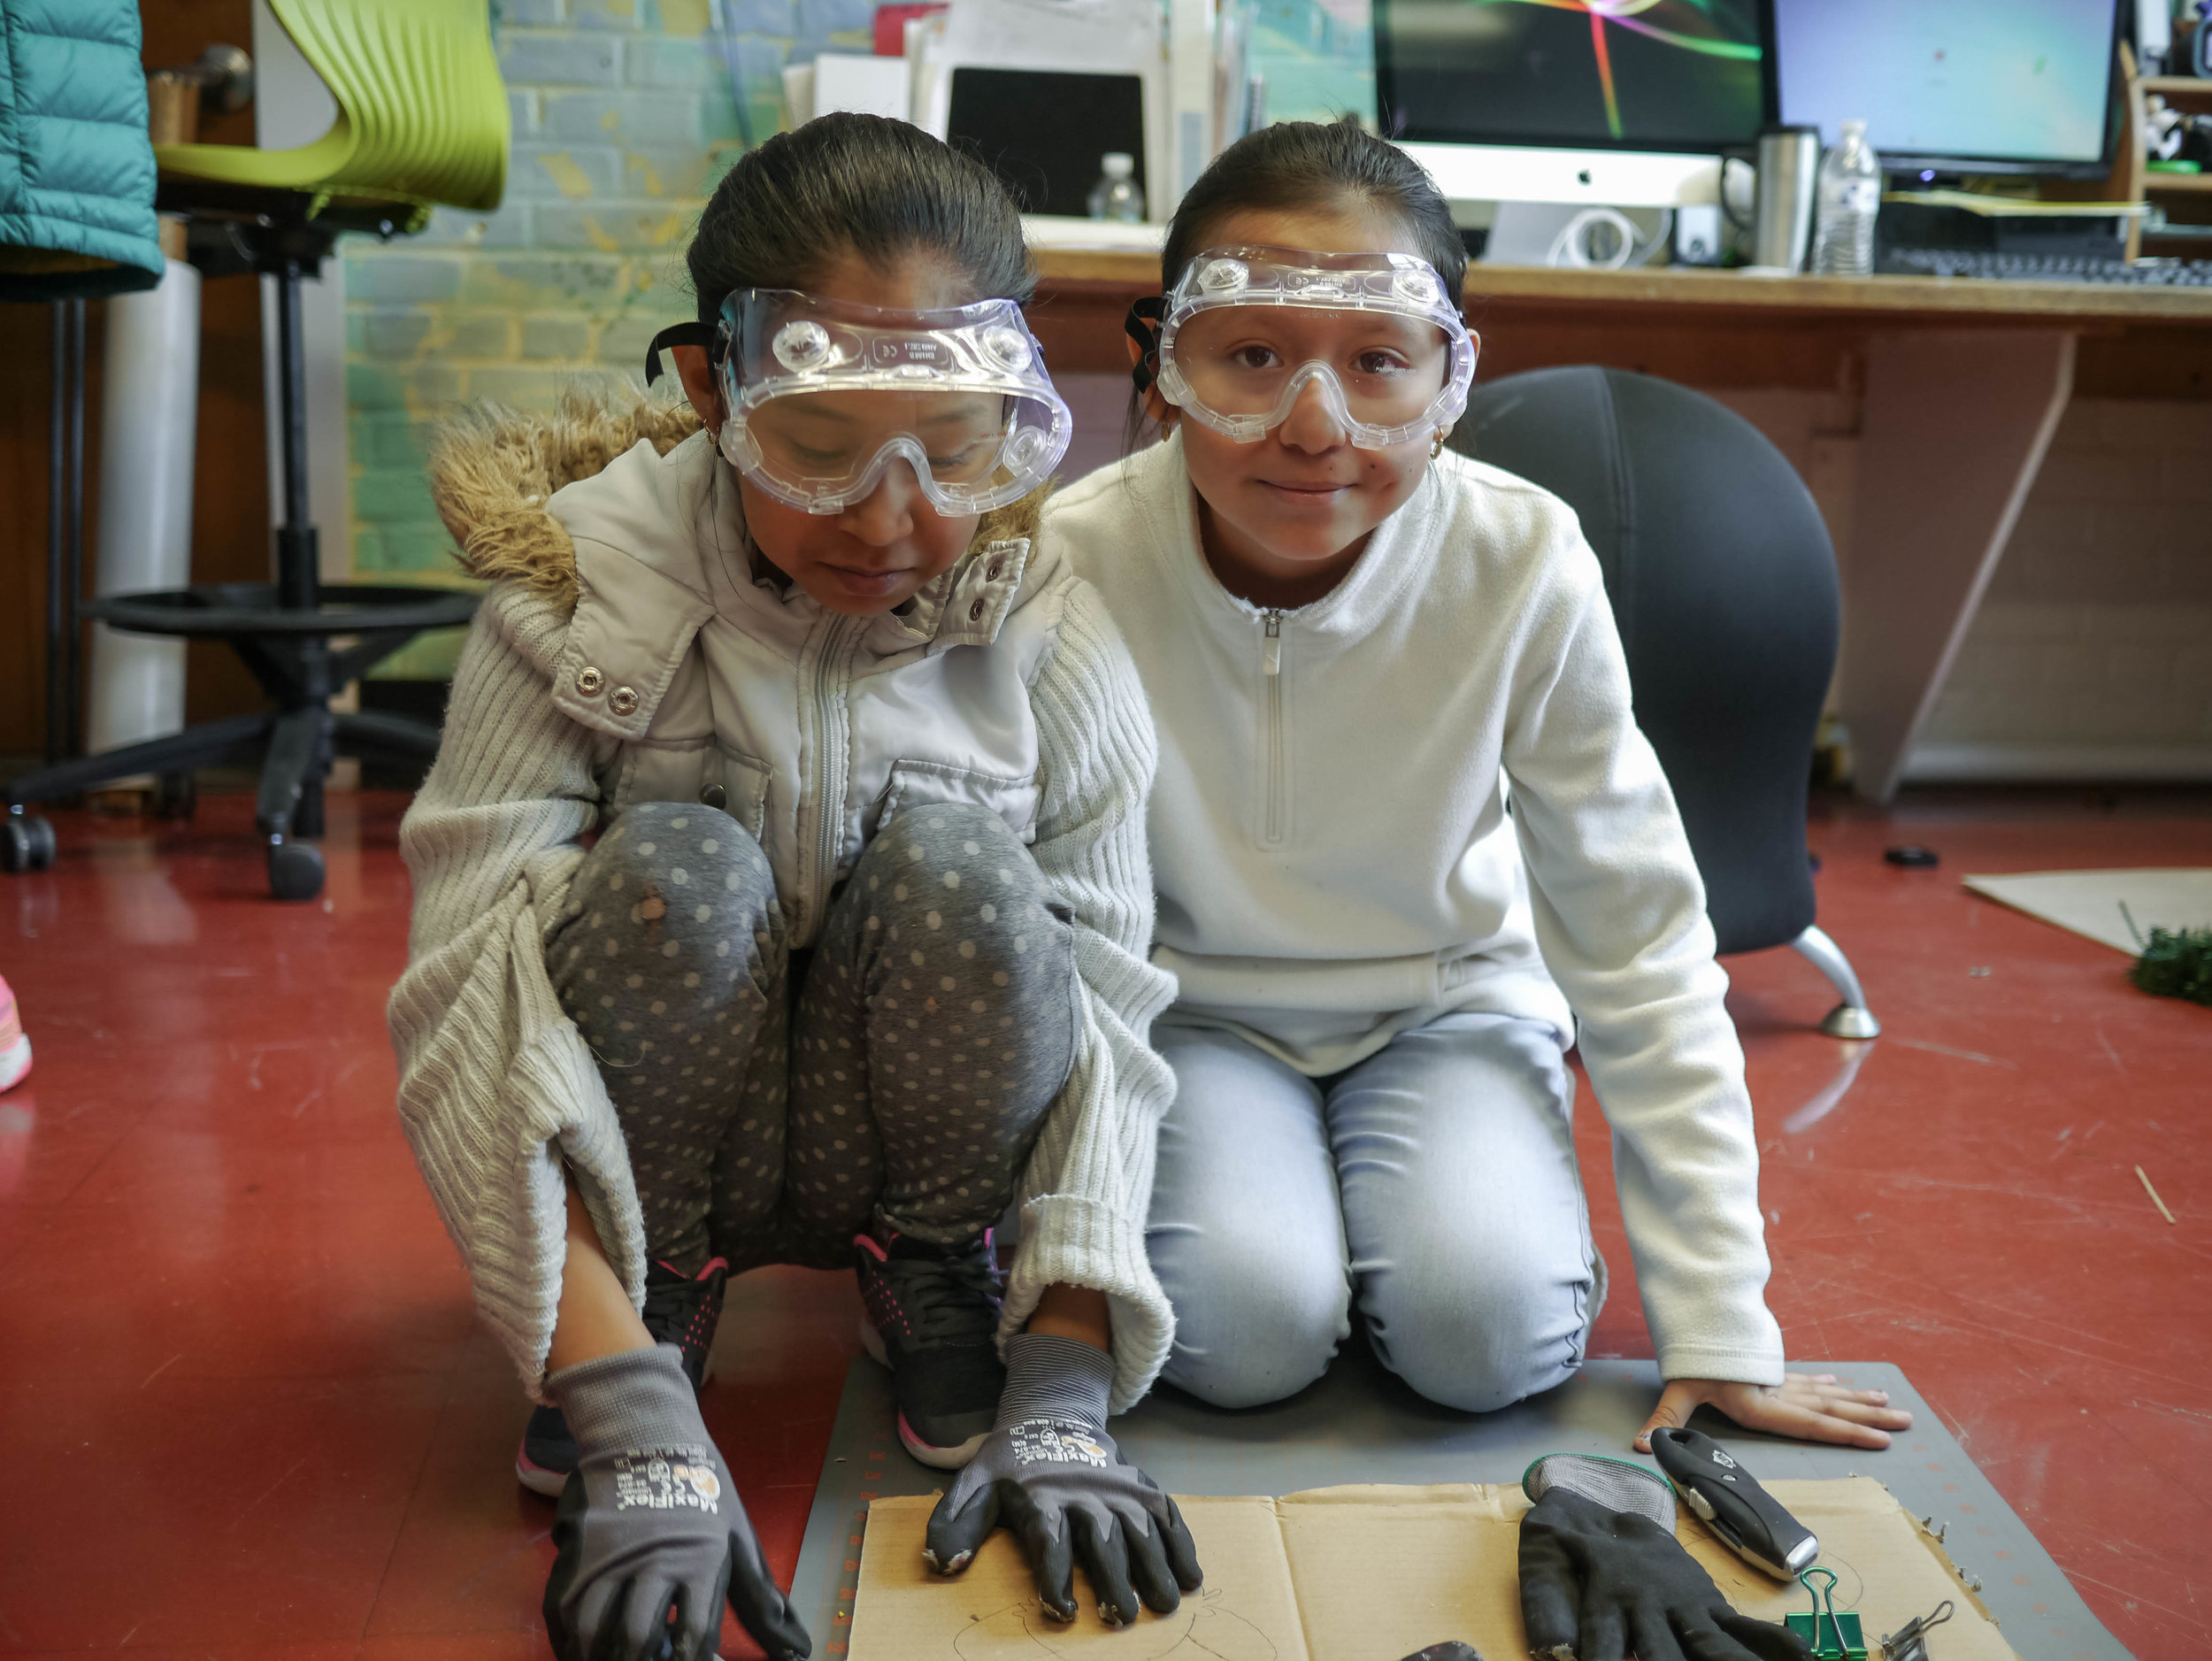 Children work on their projects at the INDE lab.